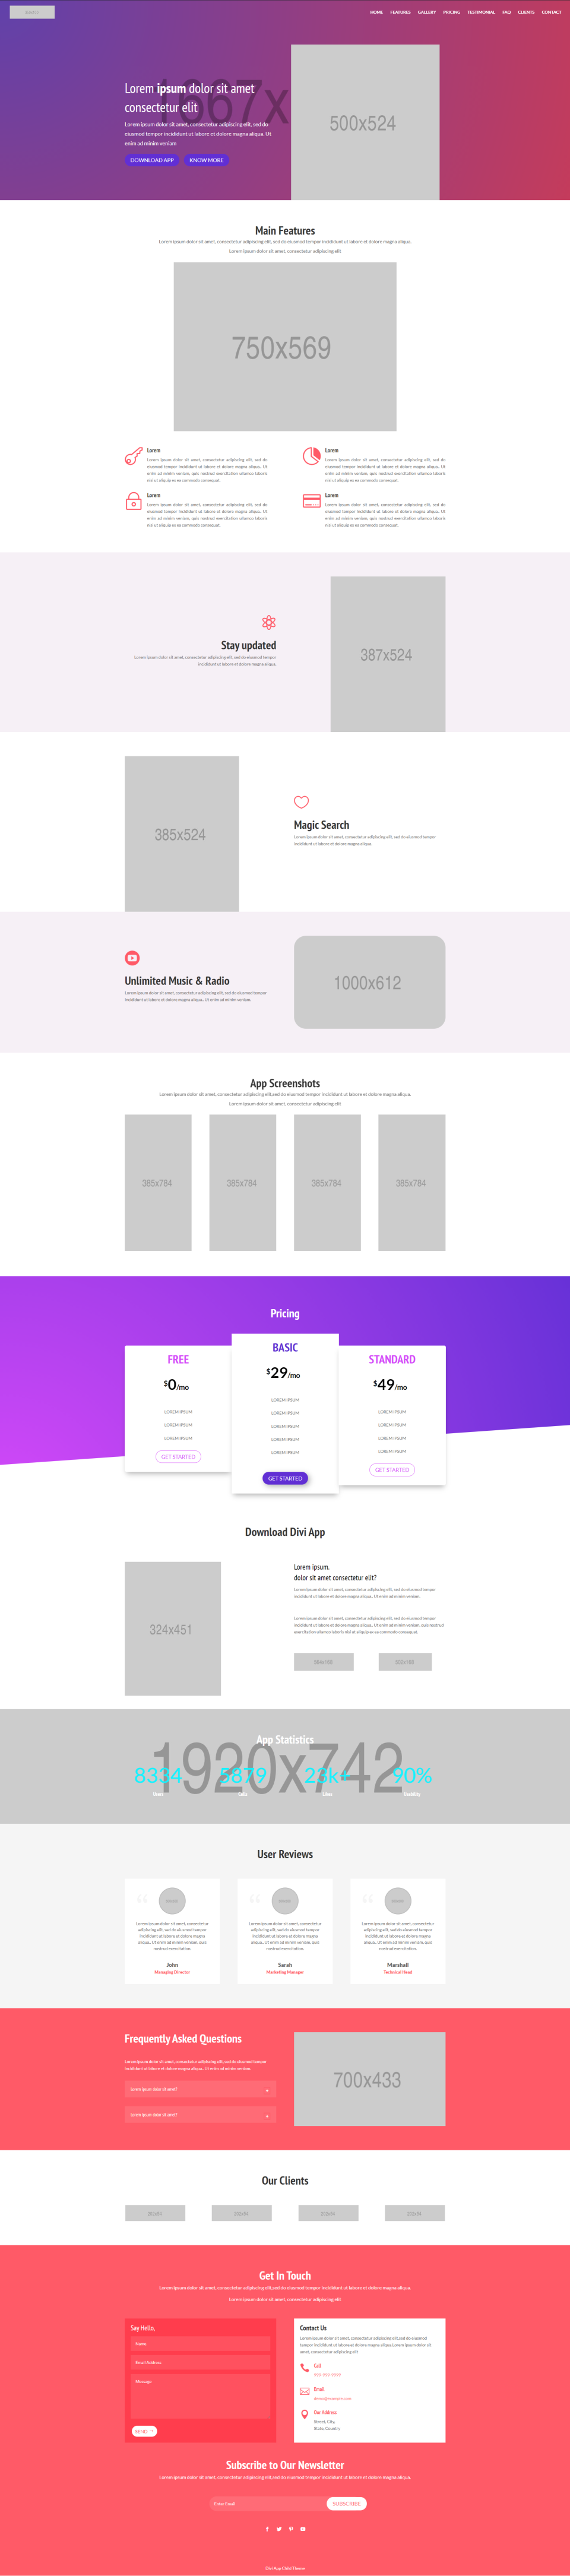 divi-app-child-theme-overview-3 Divi App Child Theme Overview